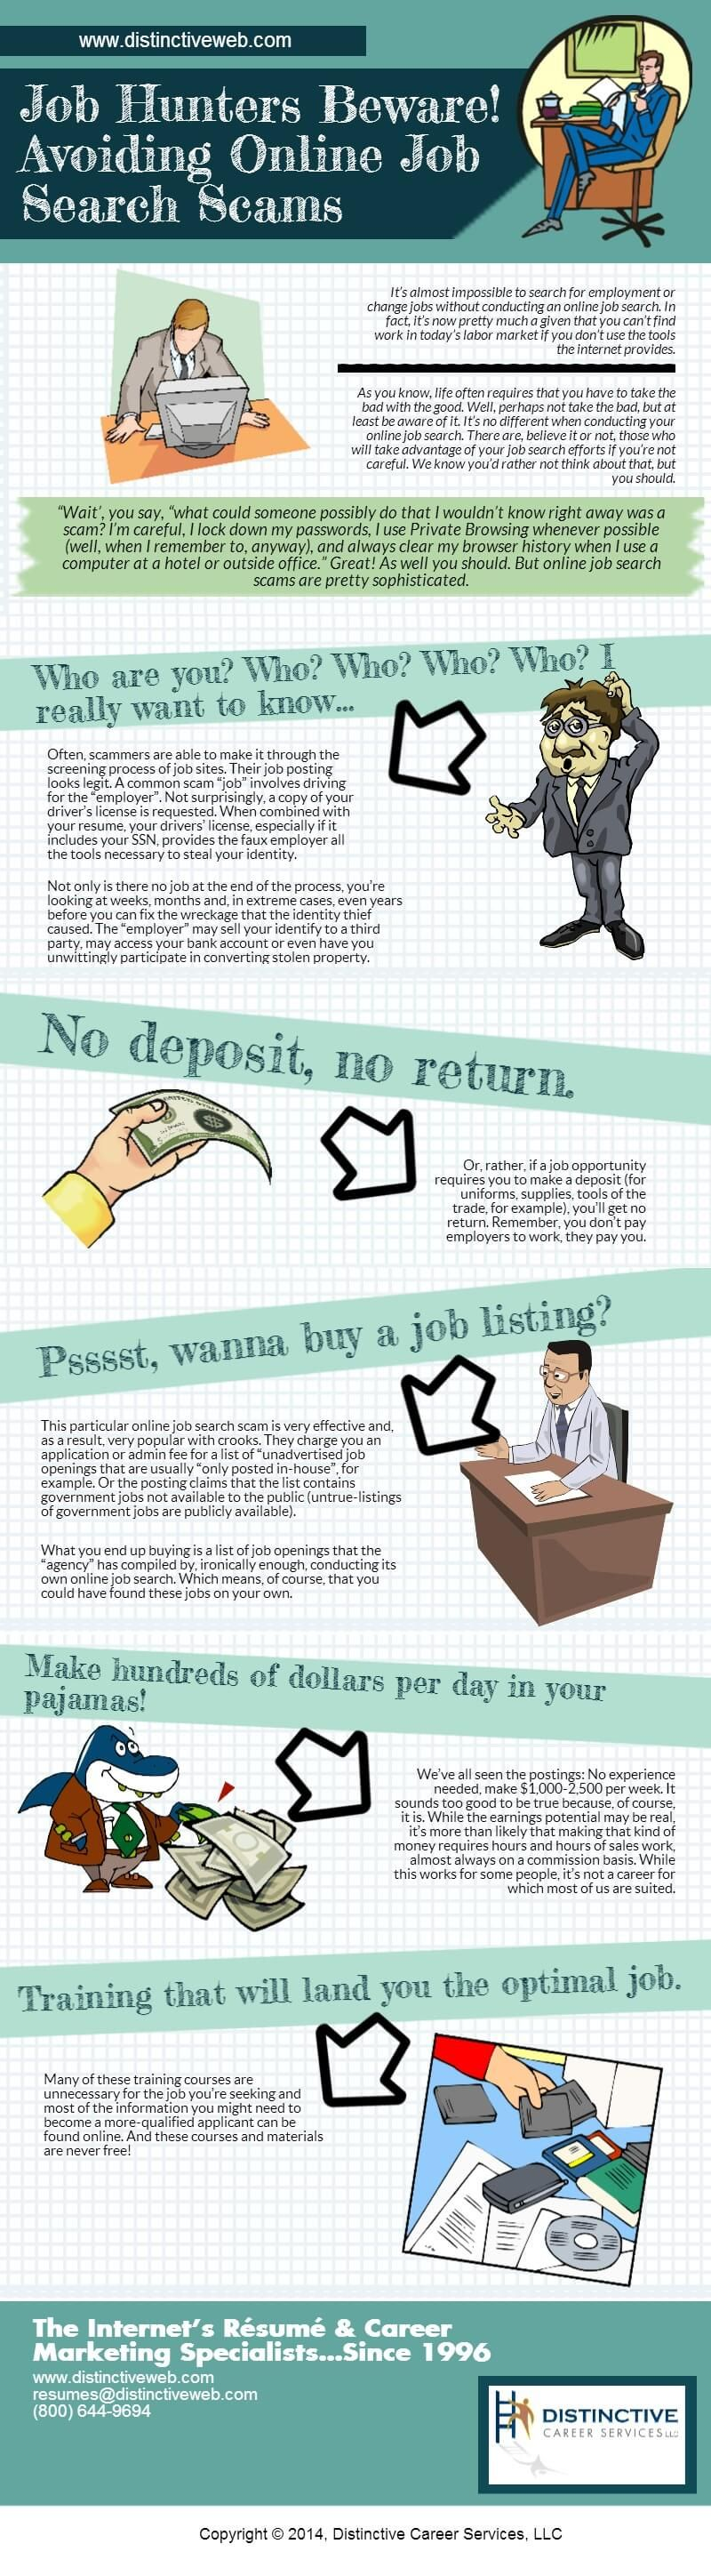 Avoid Online Job Search Scams Infographic Online job